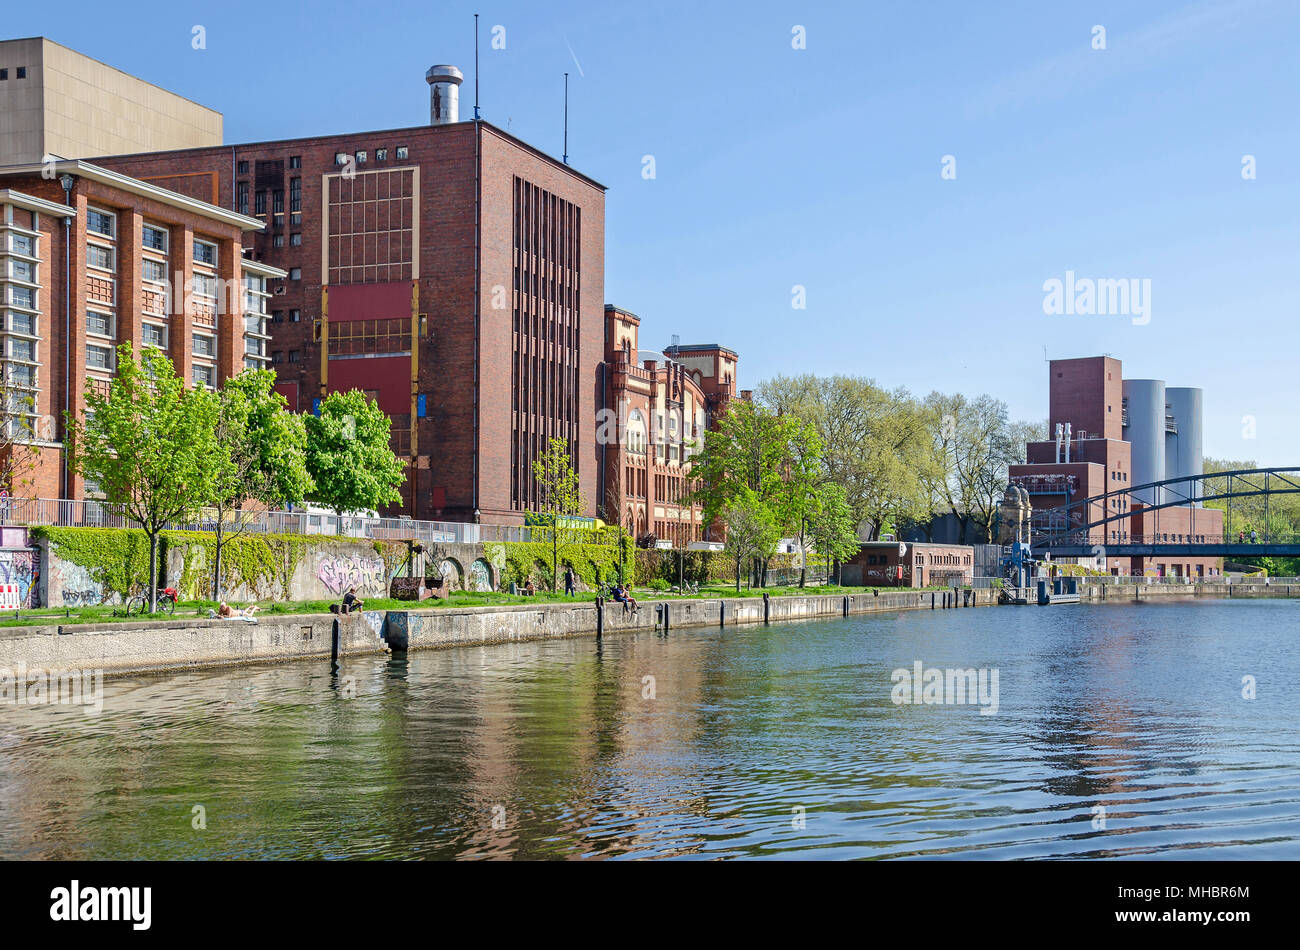 Berlin, Germany - April 22, 2018: Cogeneration plant Charlottenburg operated by the german subsidiary company of Vattenfall with its Brick Gothic hist - Stock Image